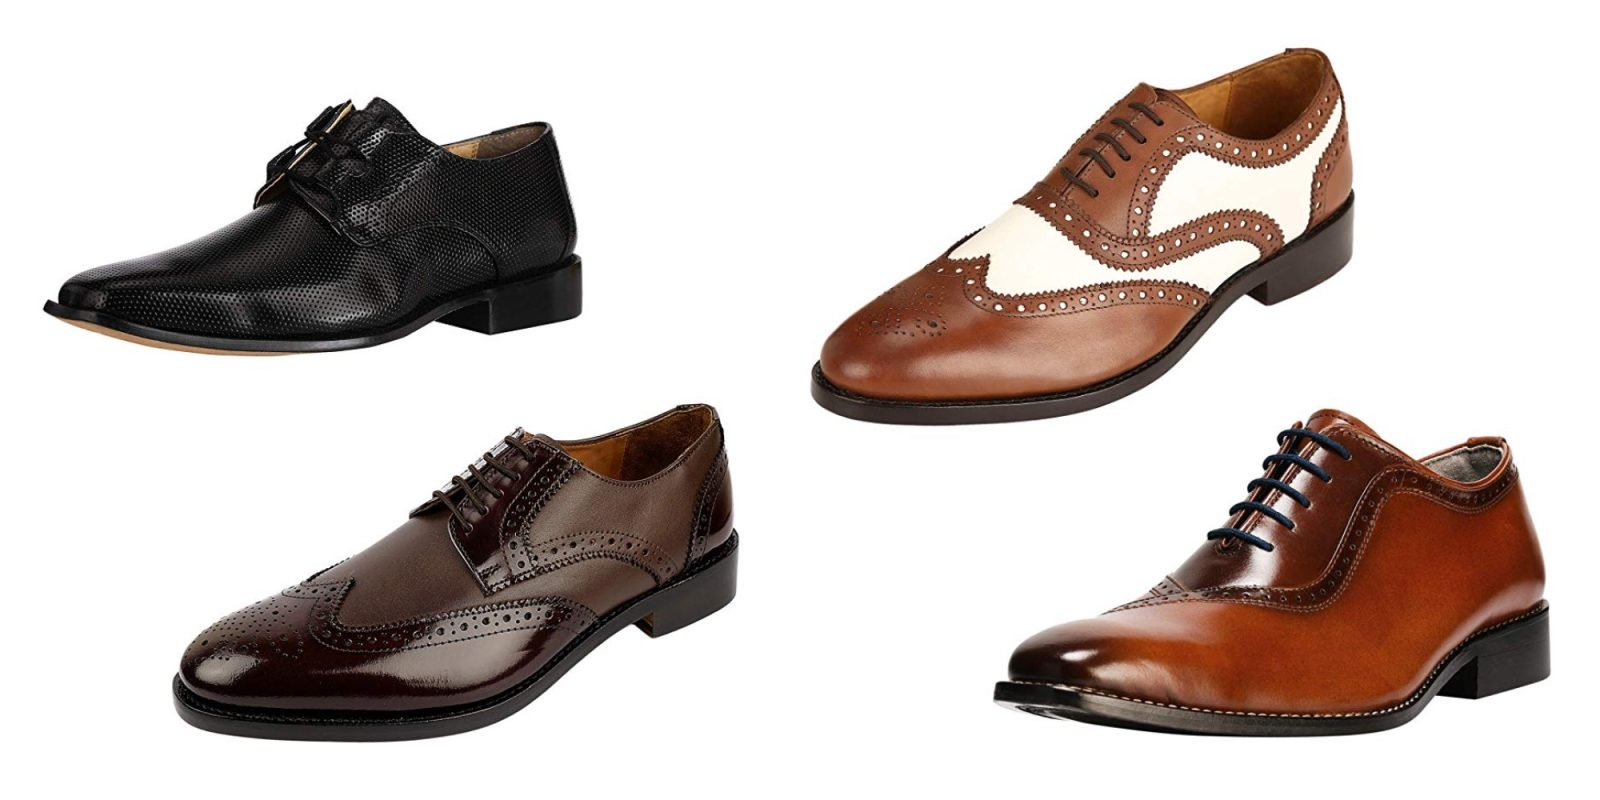 Fill out your wardrobe with 25% off men's leather dress shoes from $22.50